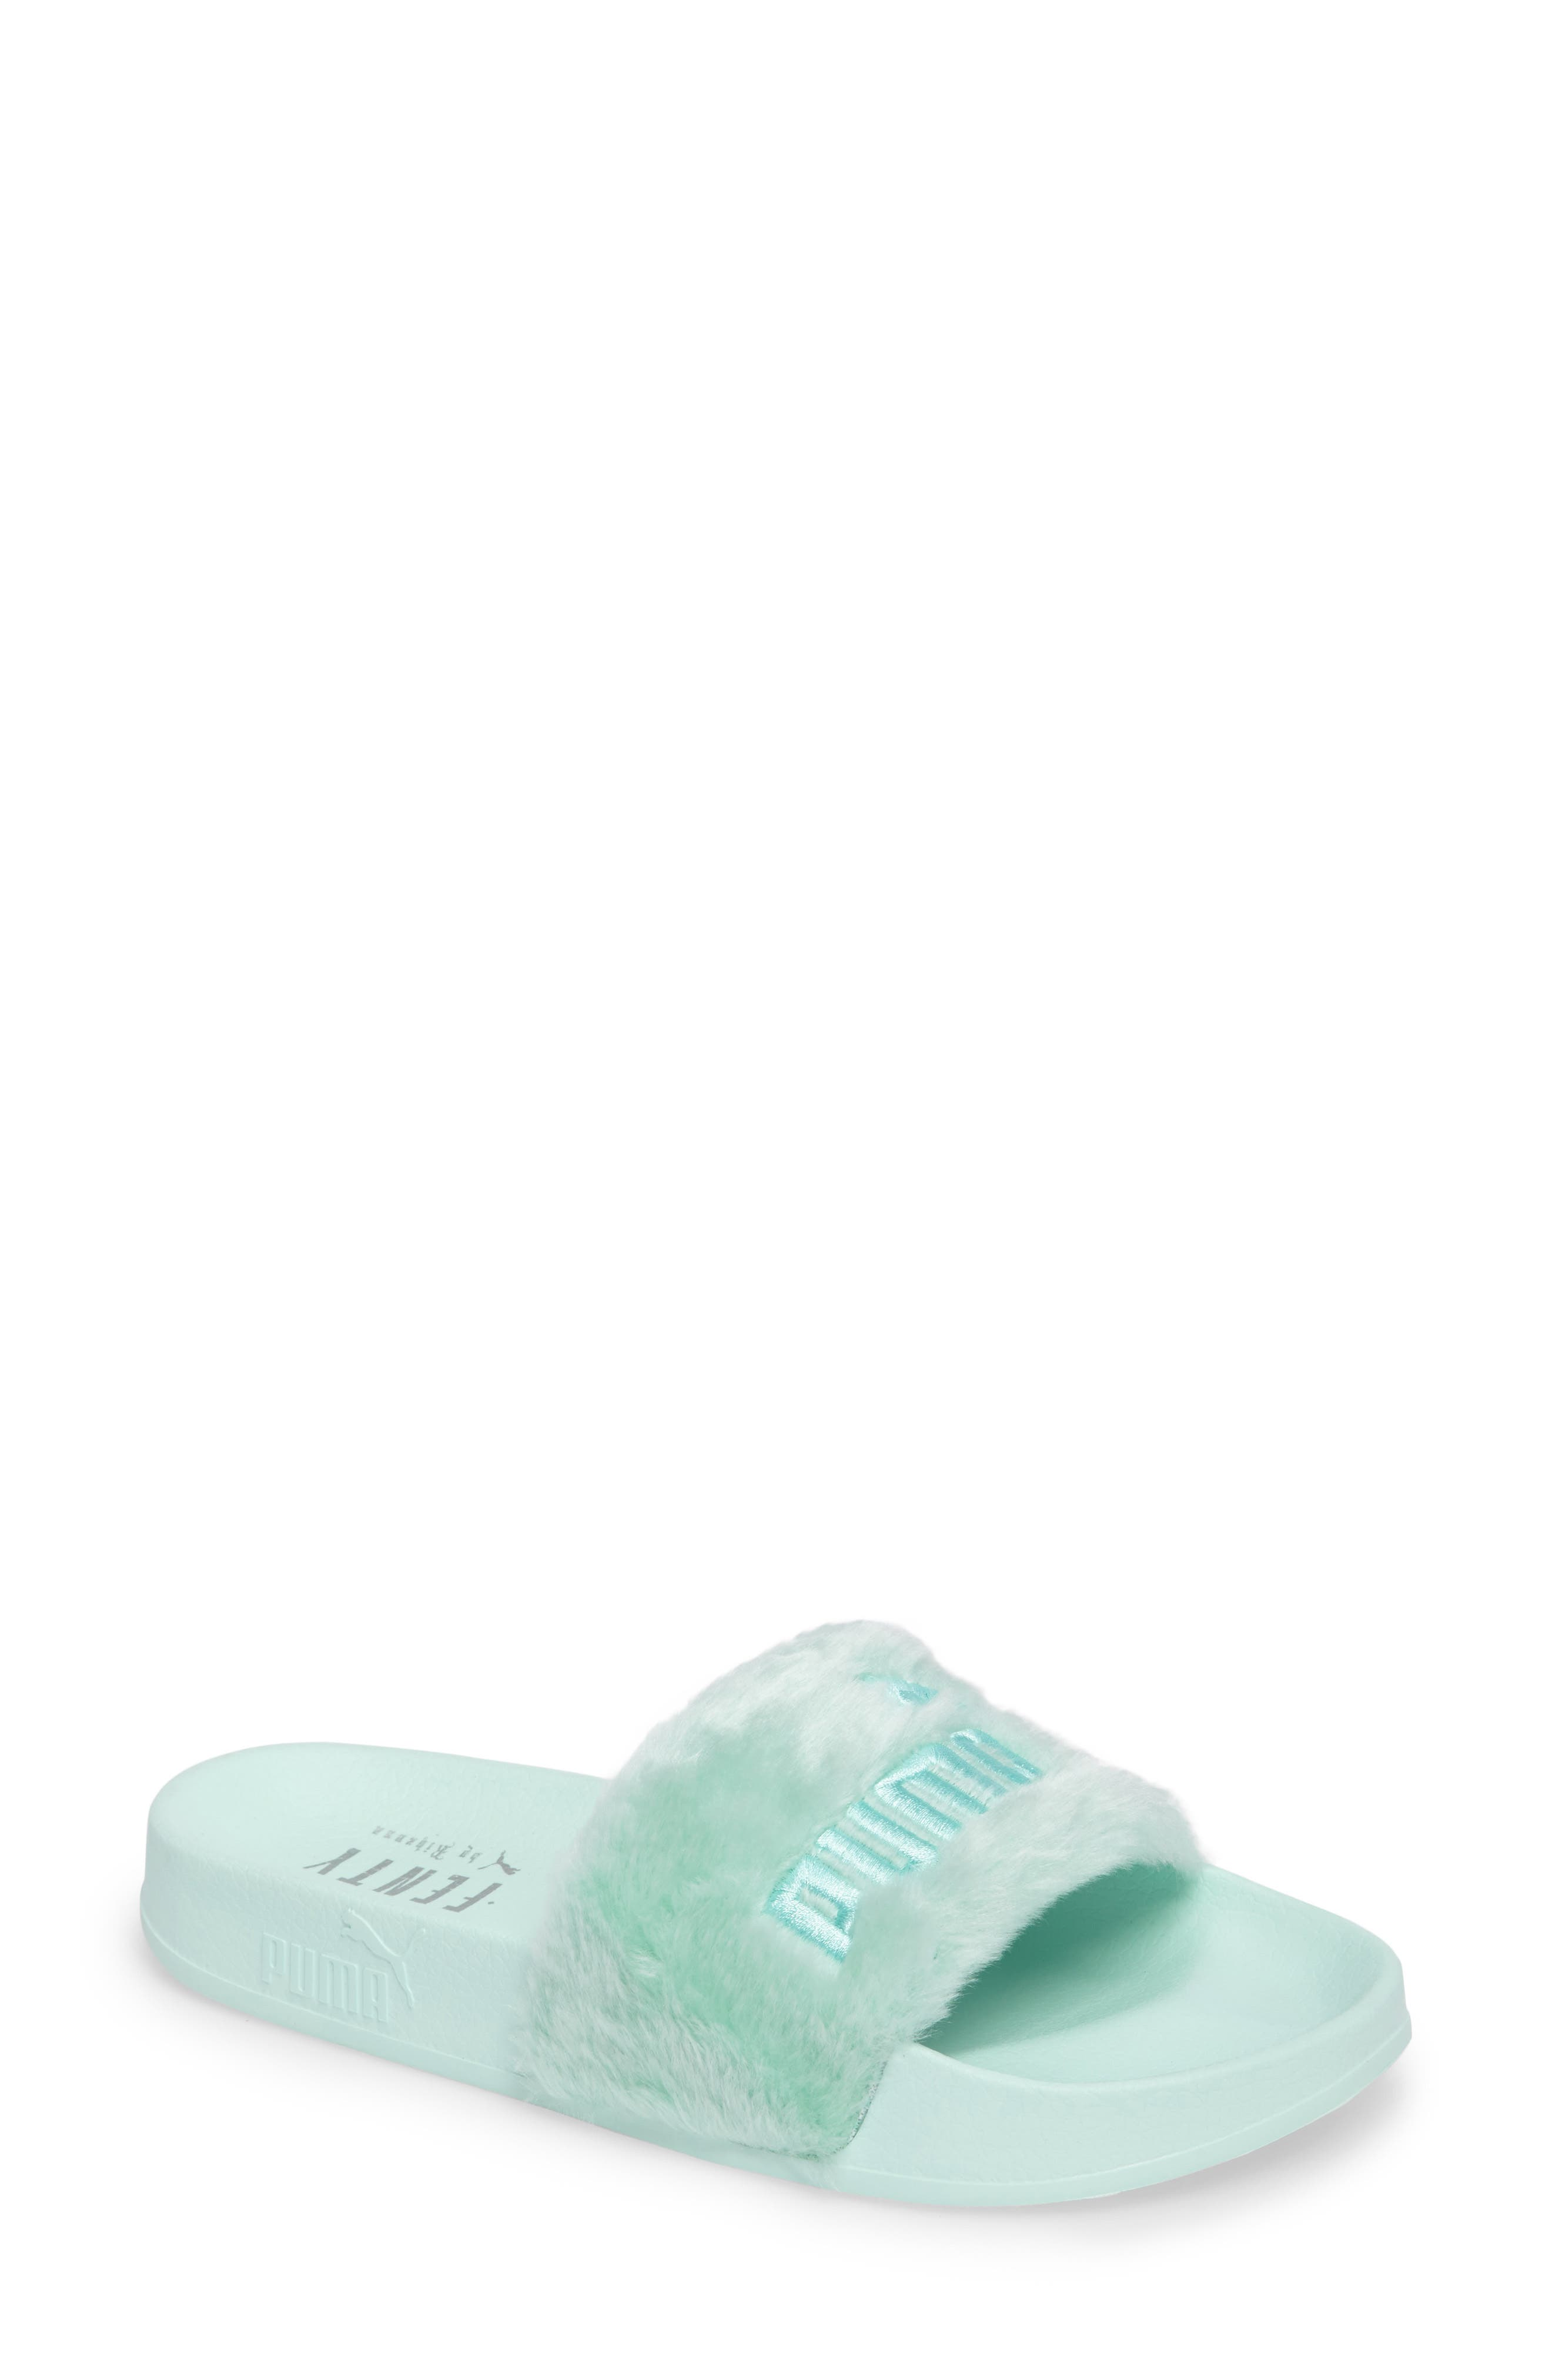 d04ebbf39759 puma slide ons cheap   OFF63% Discounted